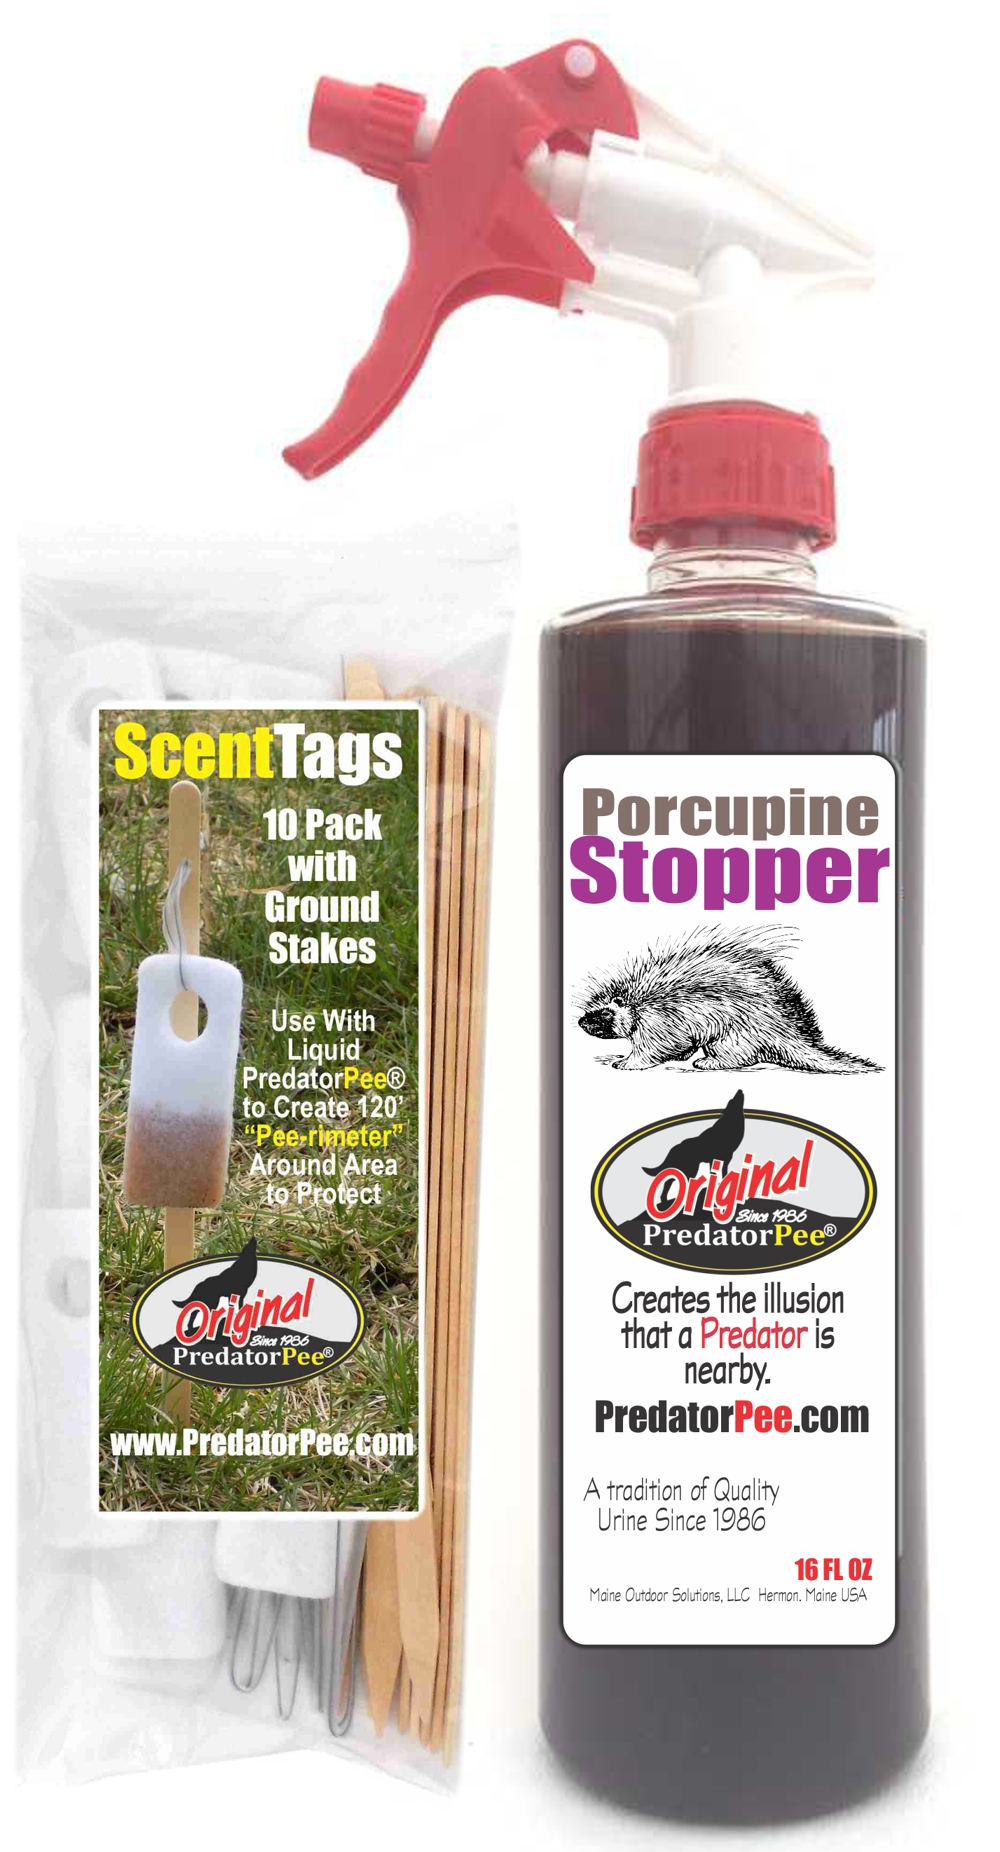 Porcupine-16oz-Scent Tag Combo